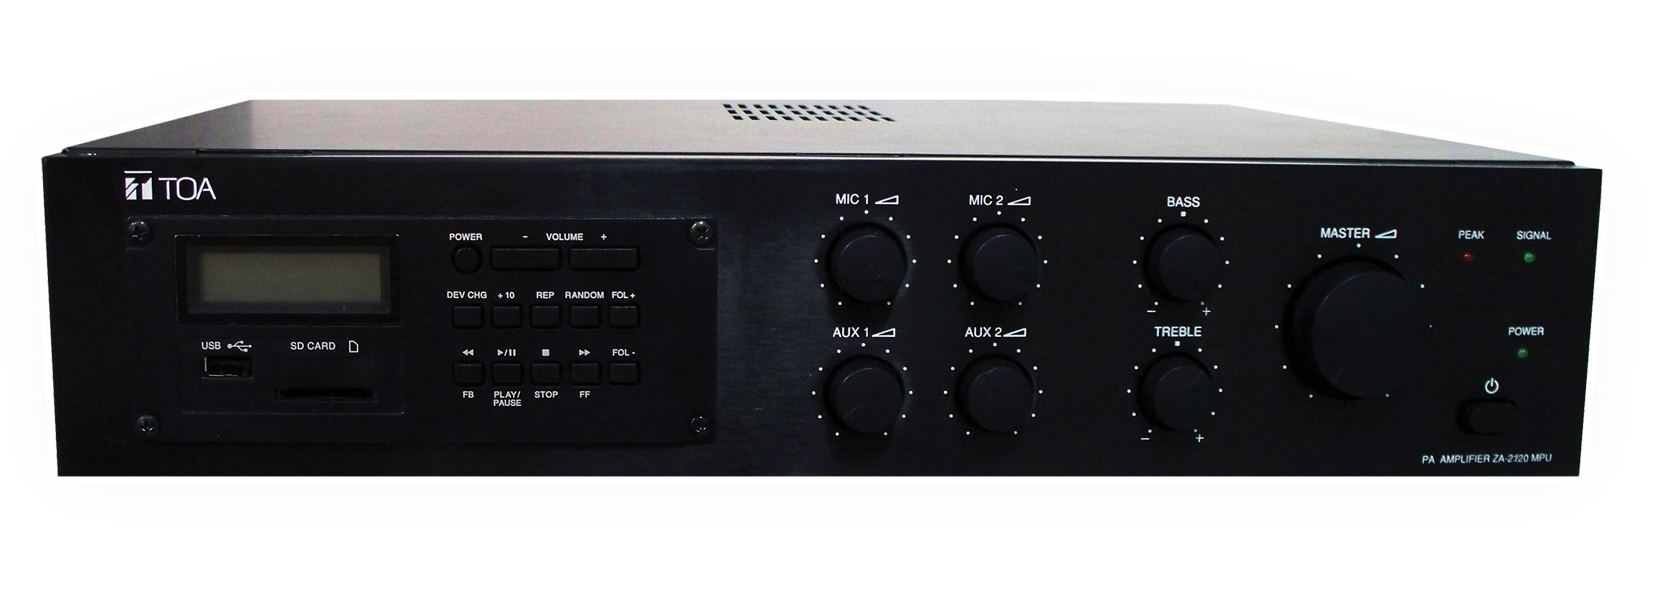 ZA-2120MPU Mixer Power Amplifier with MP3 Player